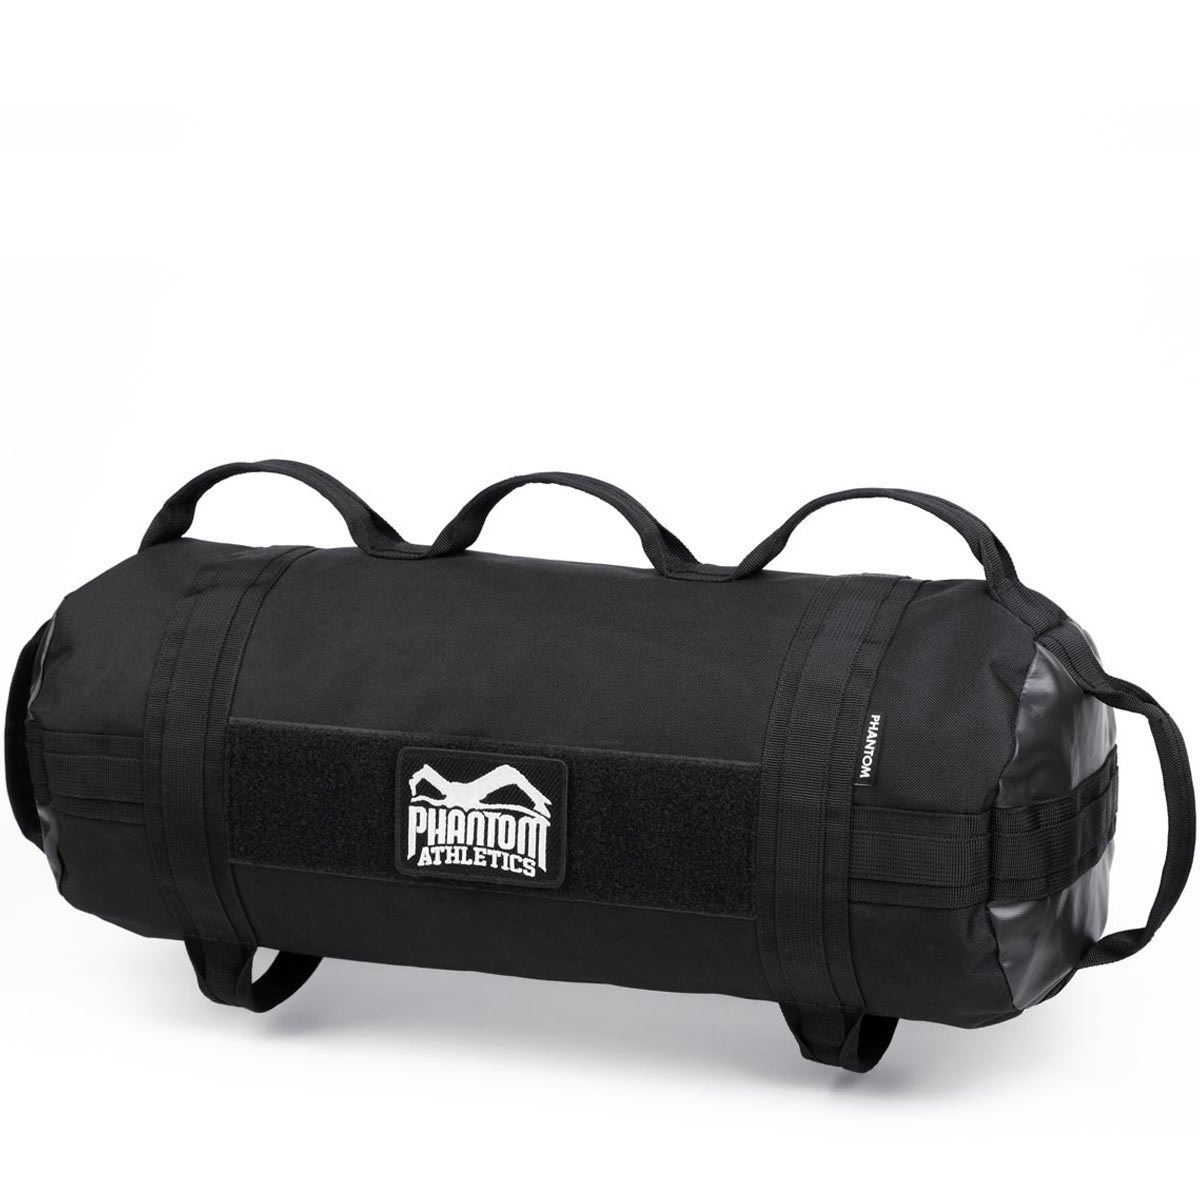 Training bag Phantom Athletics